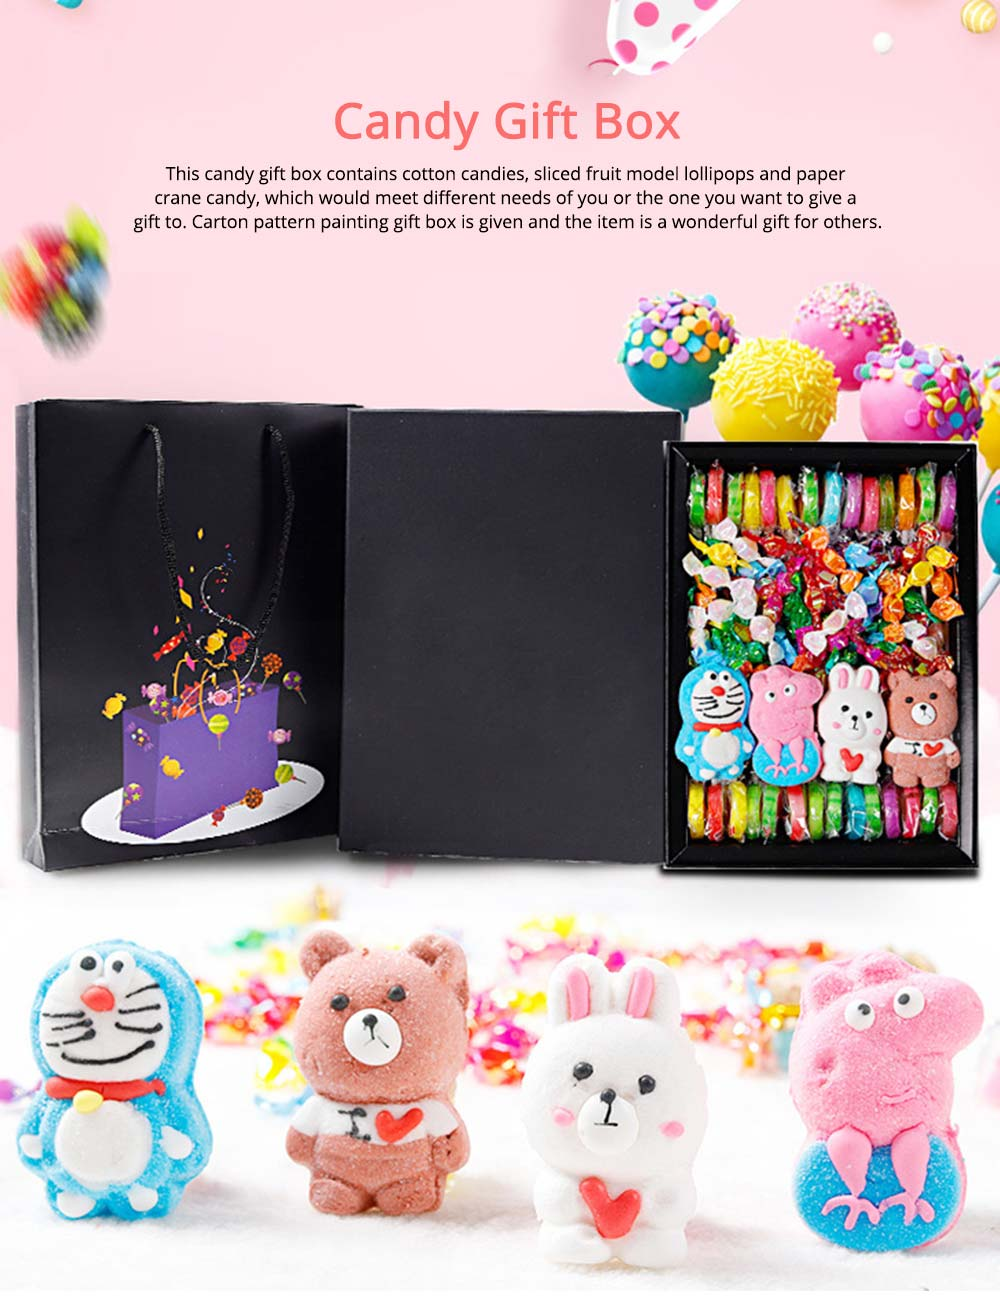 Cute Creative Candy Marshmallow Lollipop Gift Box for Children, Delicate Carton Painting Sticker Candy Present for Lovers Family 0